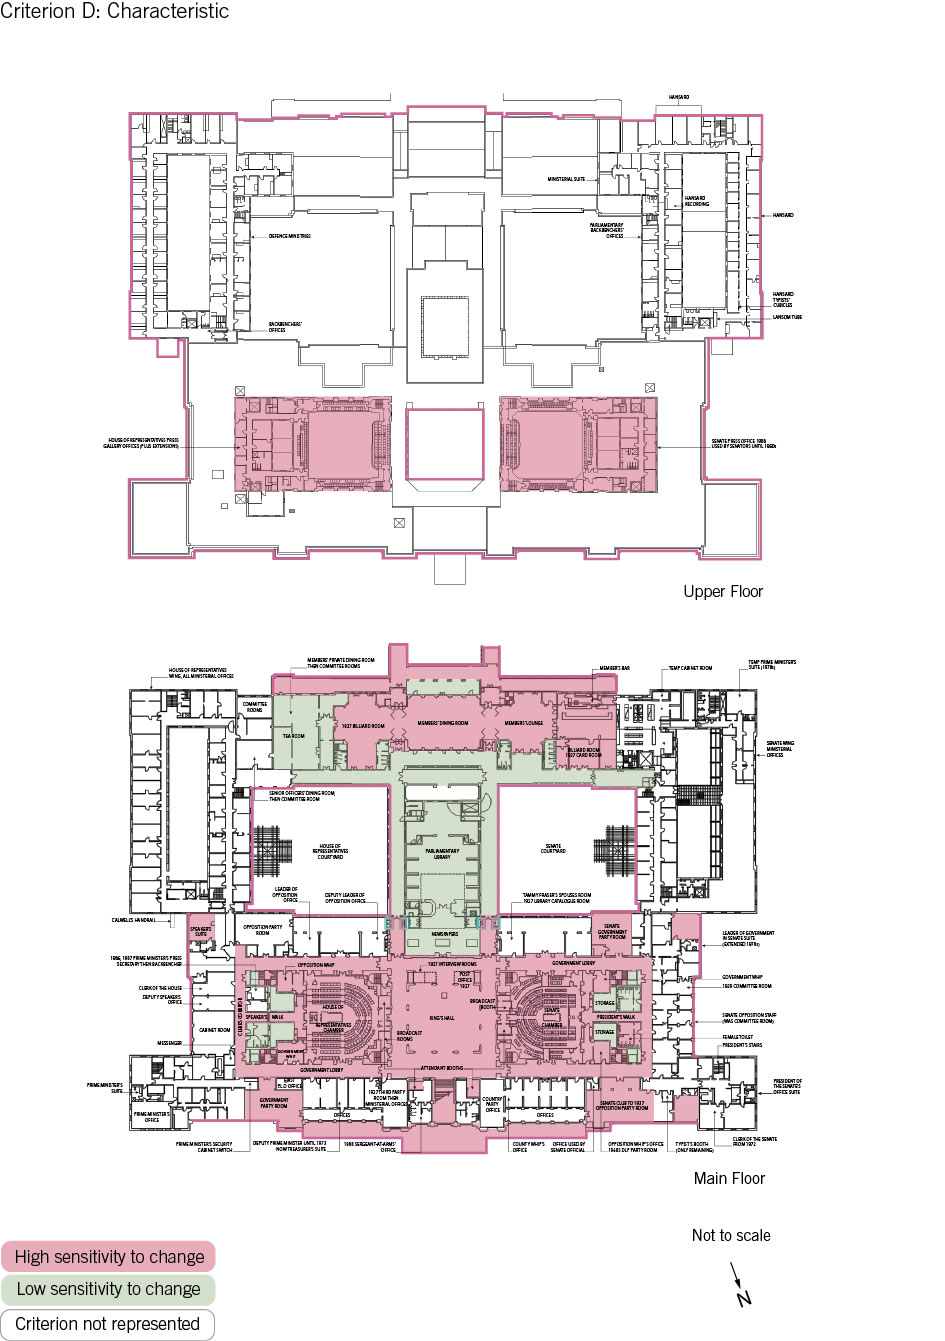 Old Parliament House upper and main floor plan showing the zones according to criterion D: characteristic.